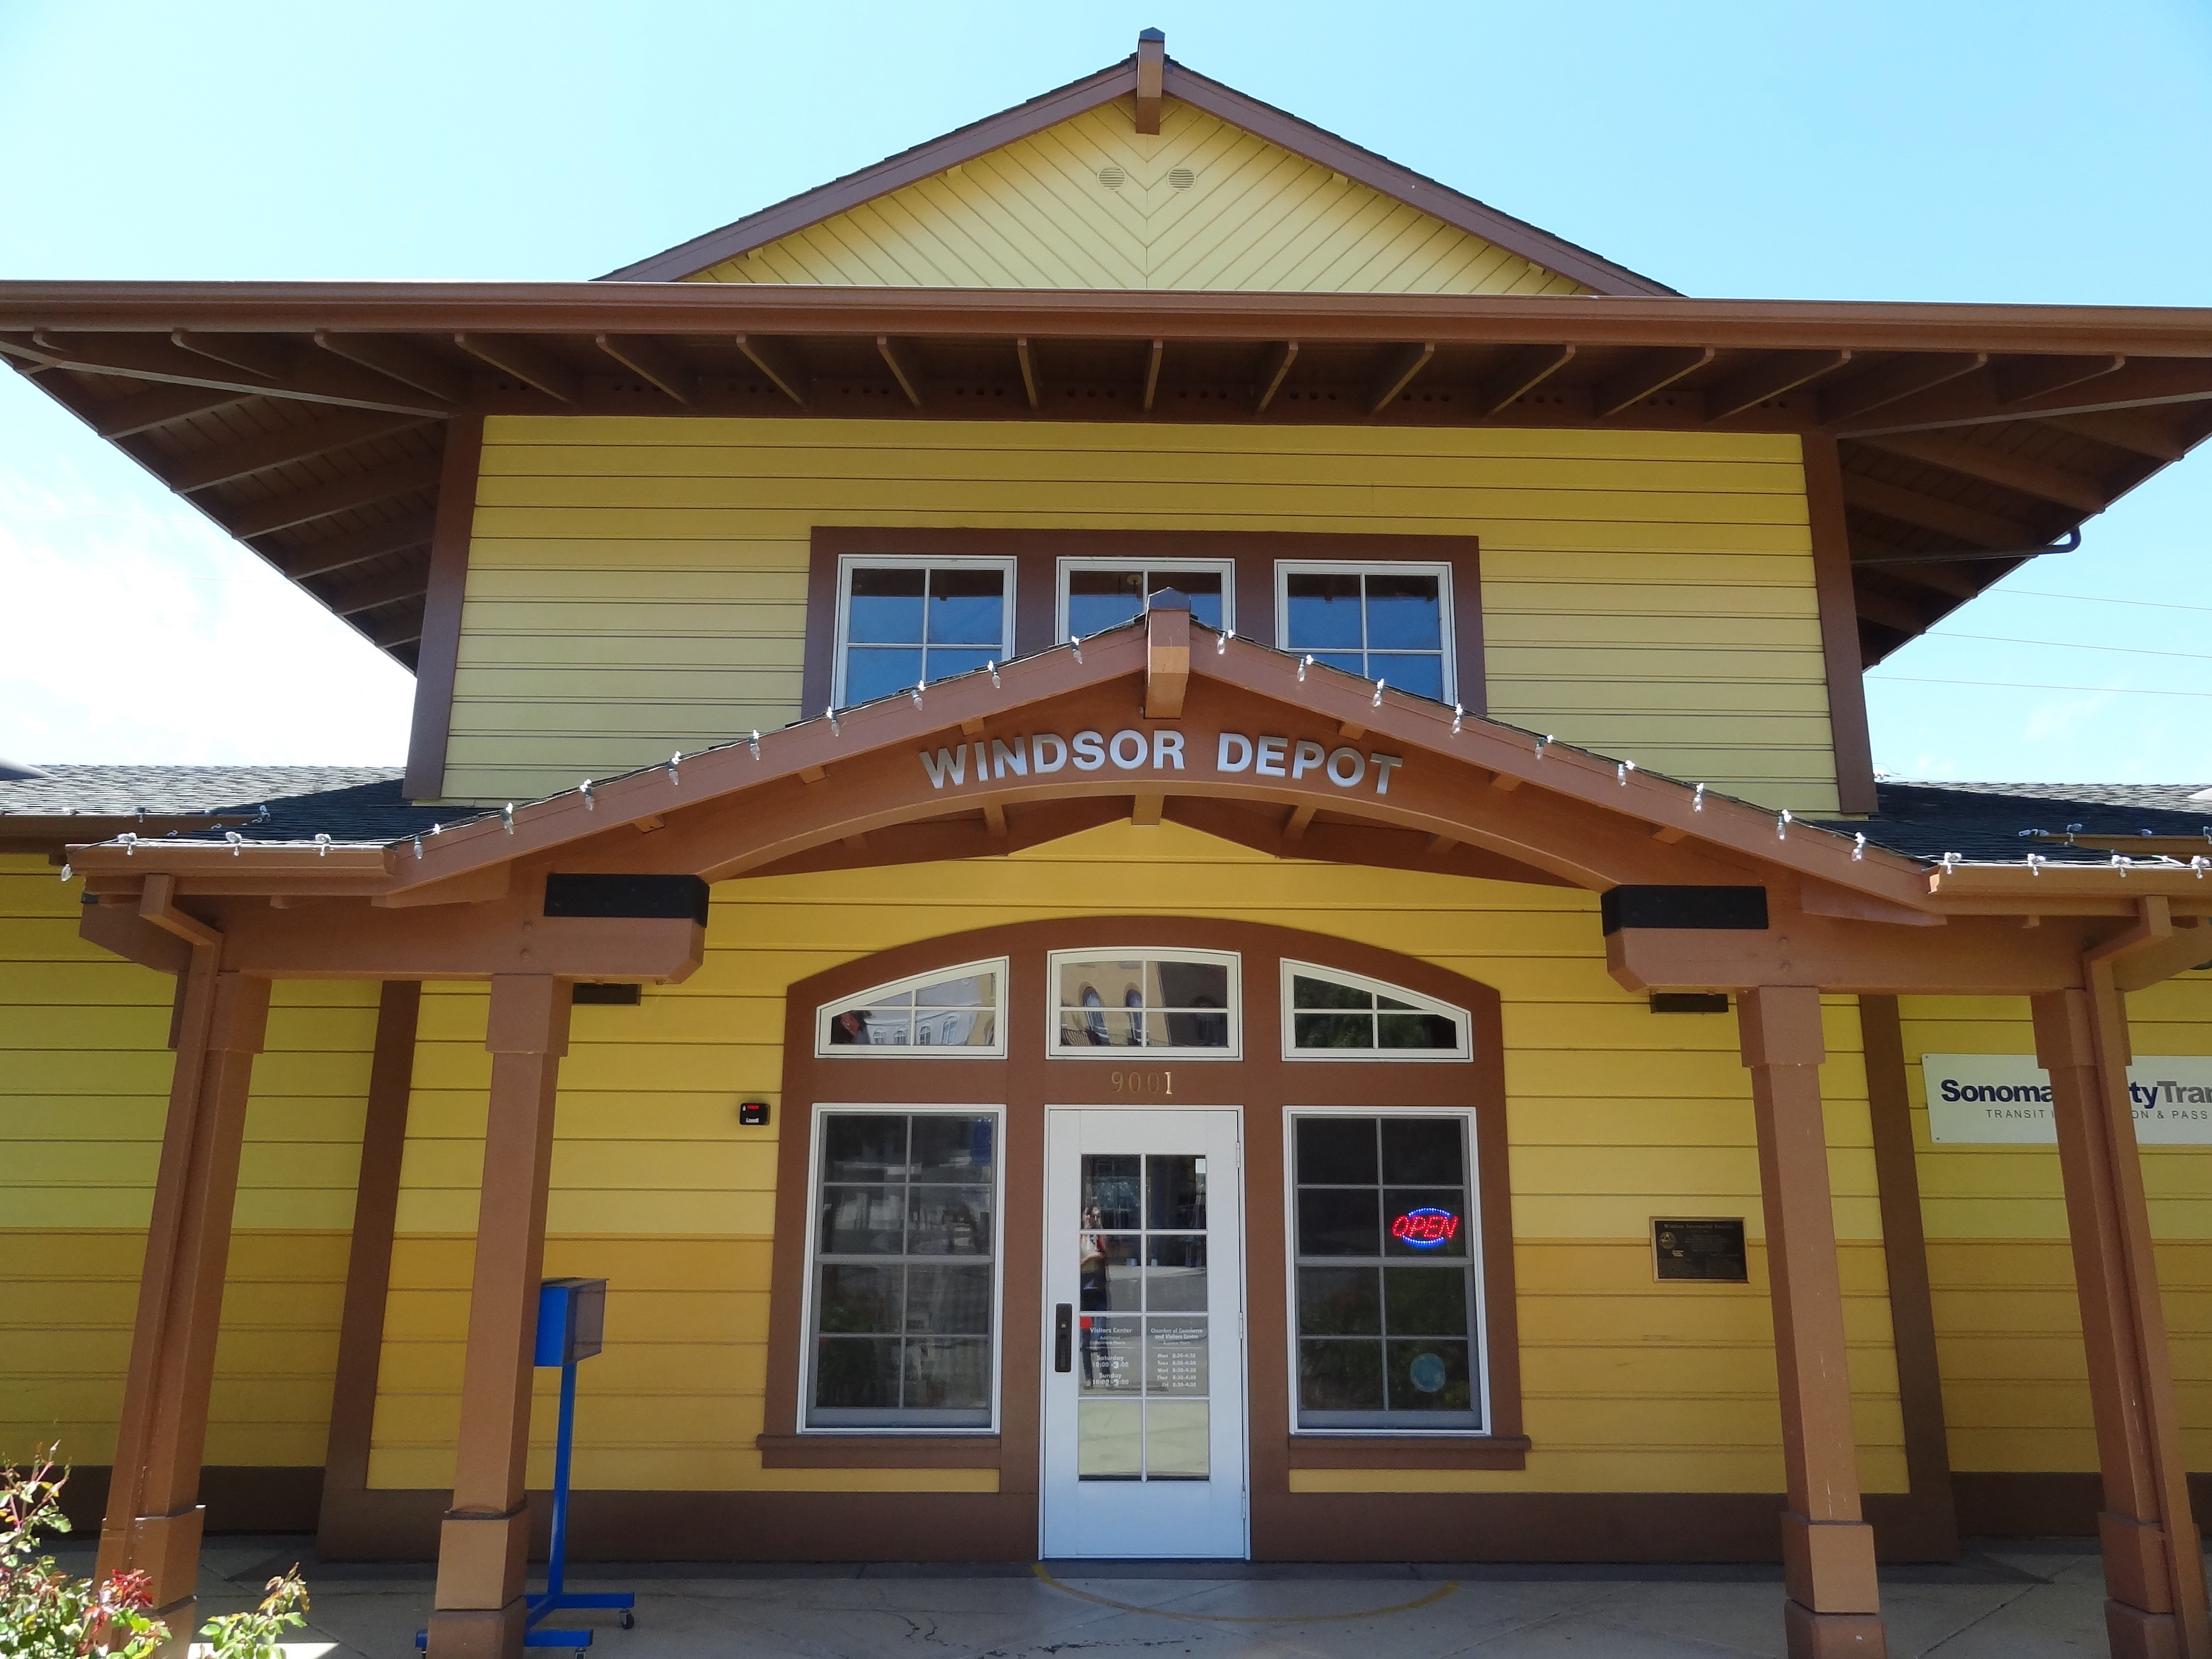 cities_towns_Windsor_depot_Sonoma_County_013